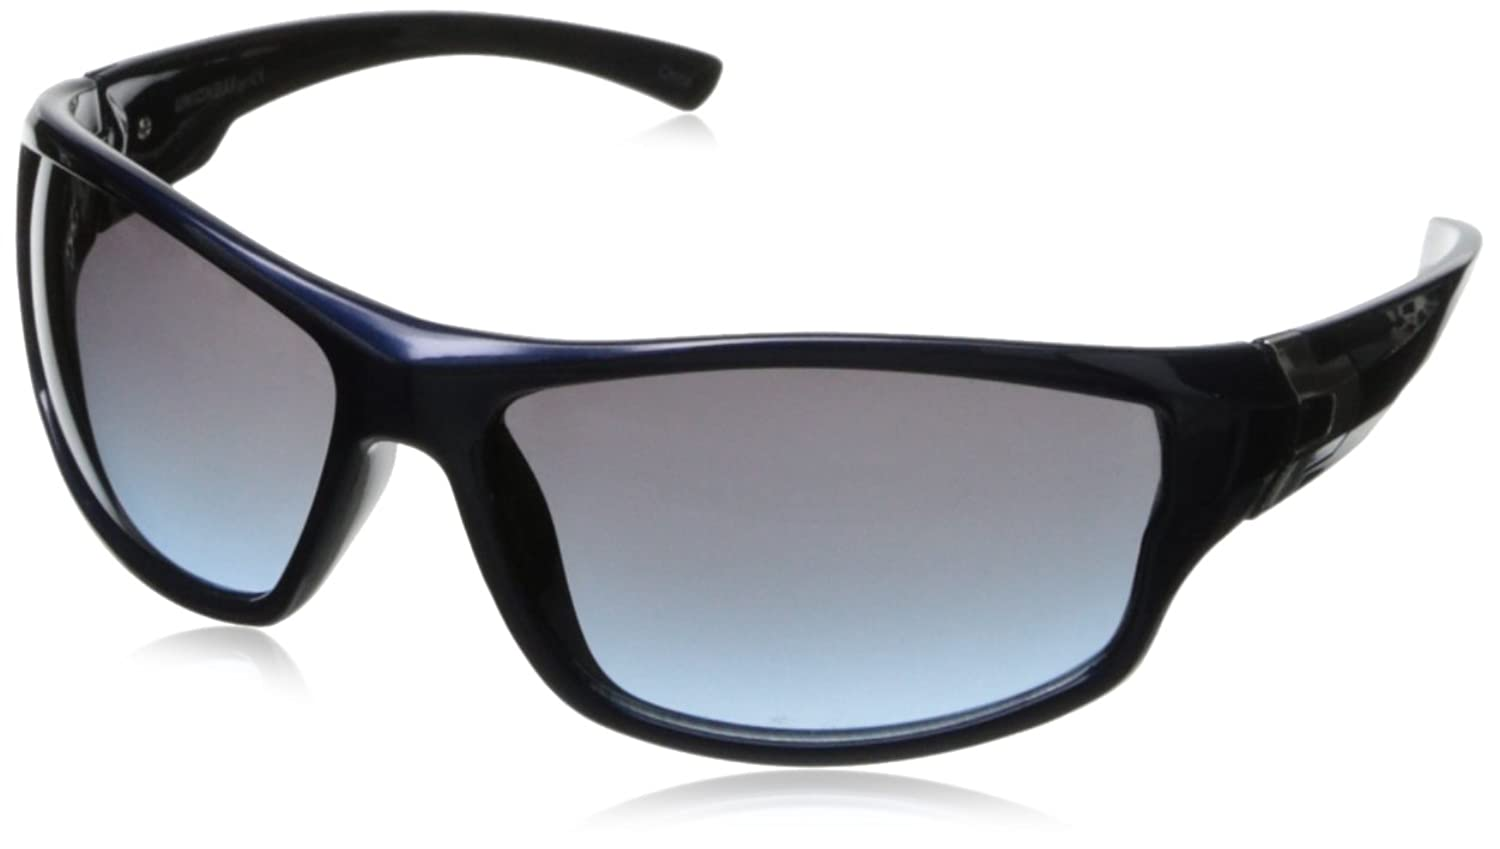 Union Bay Women's U682 Sport Sunglasses